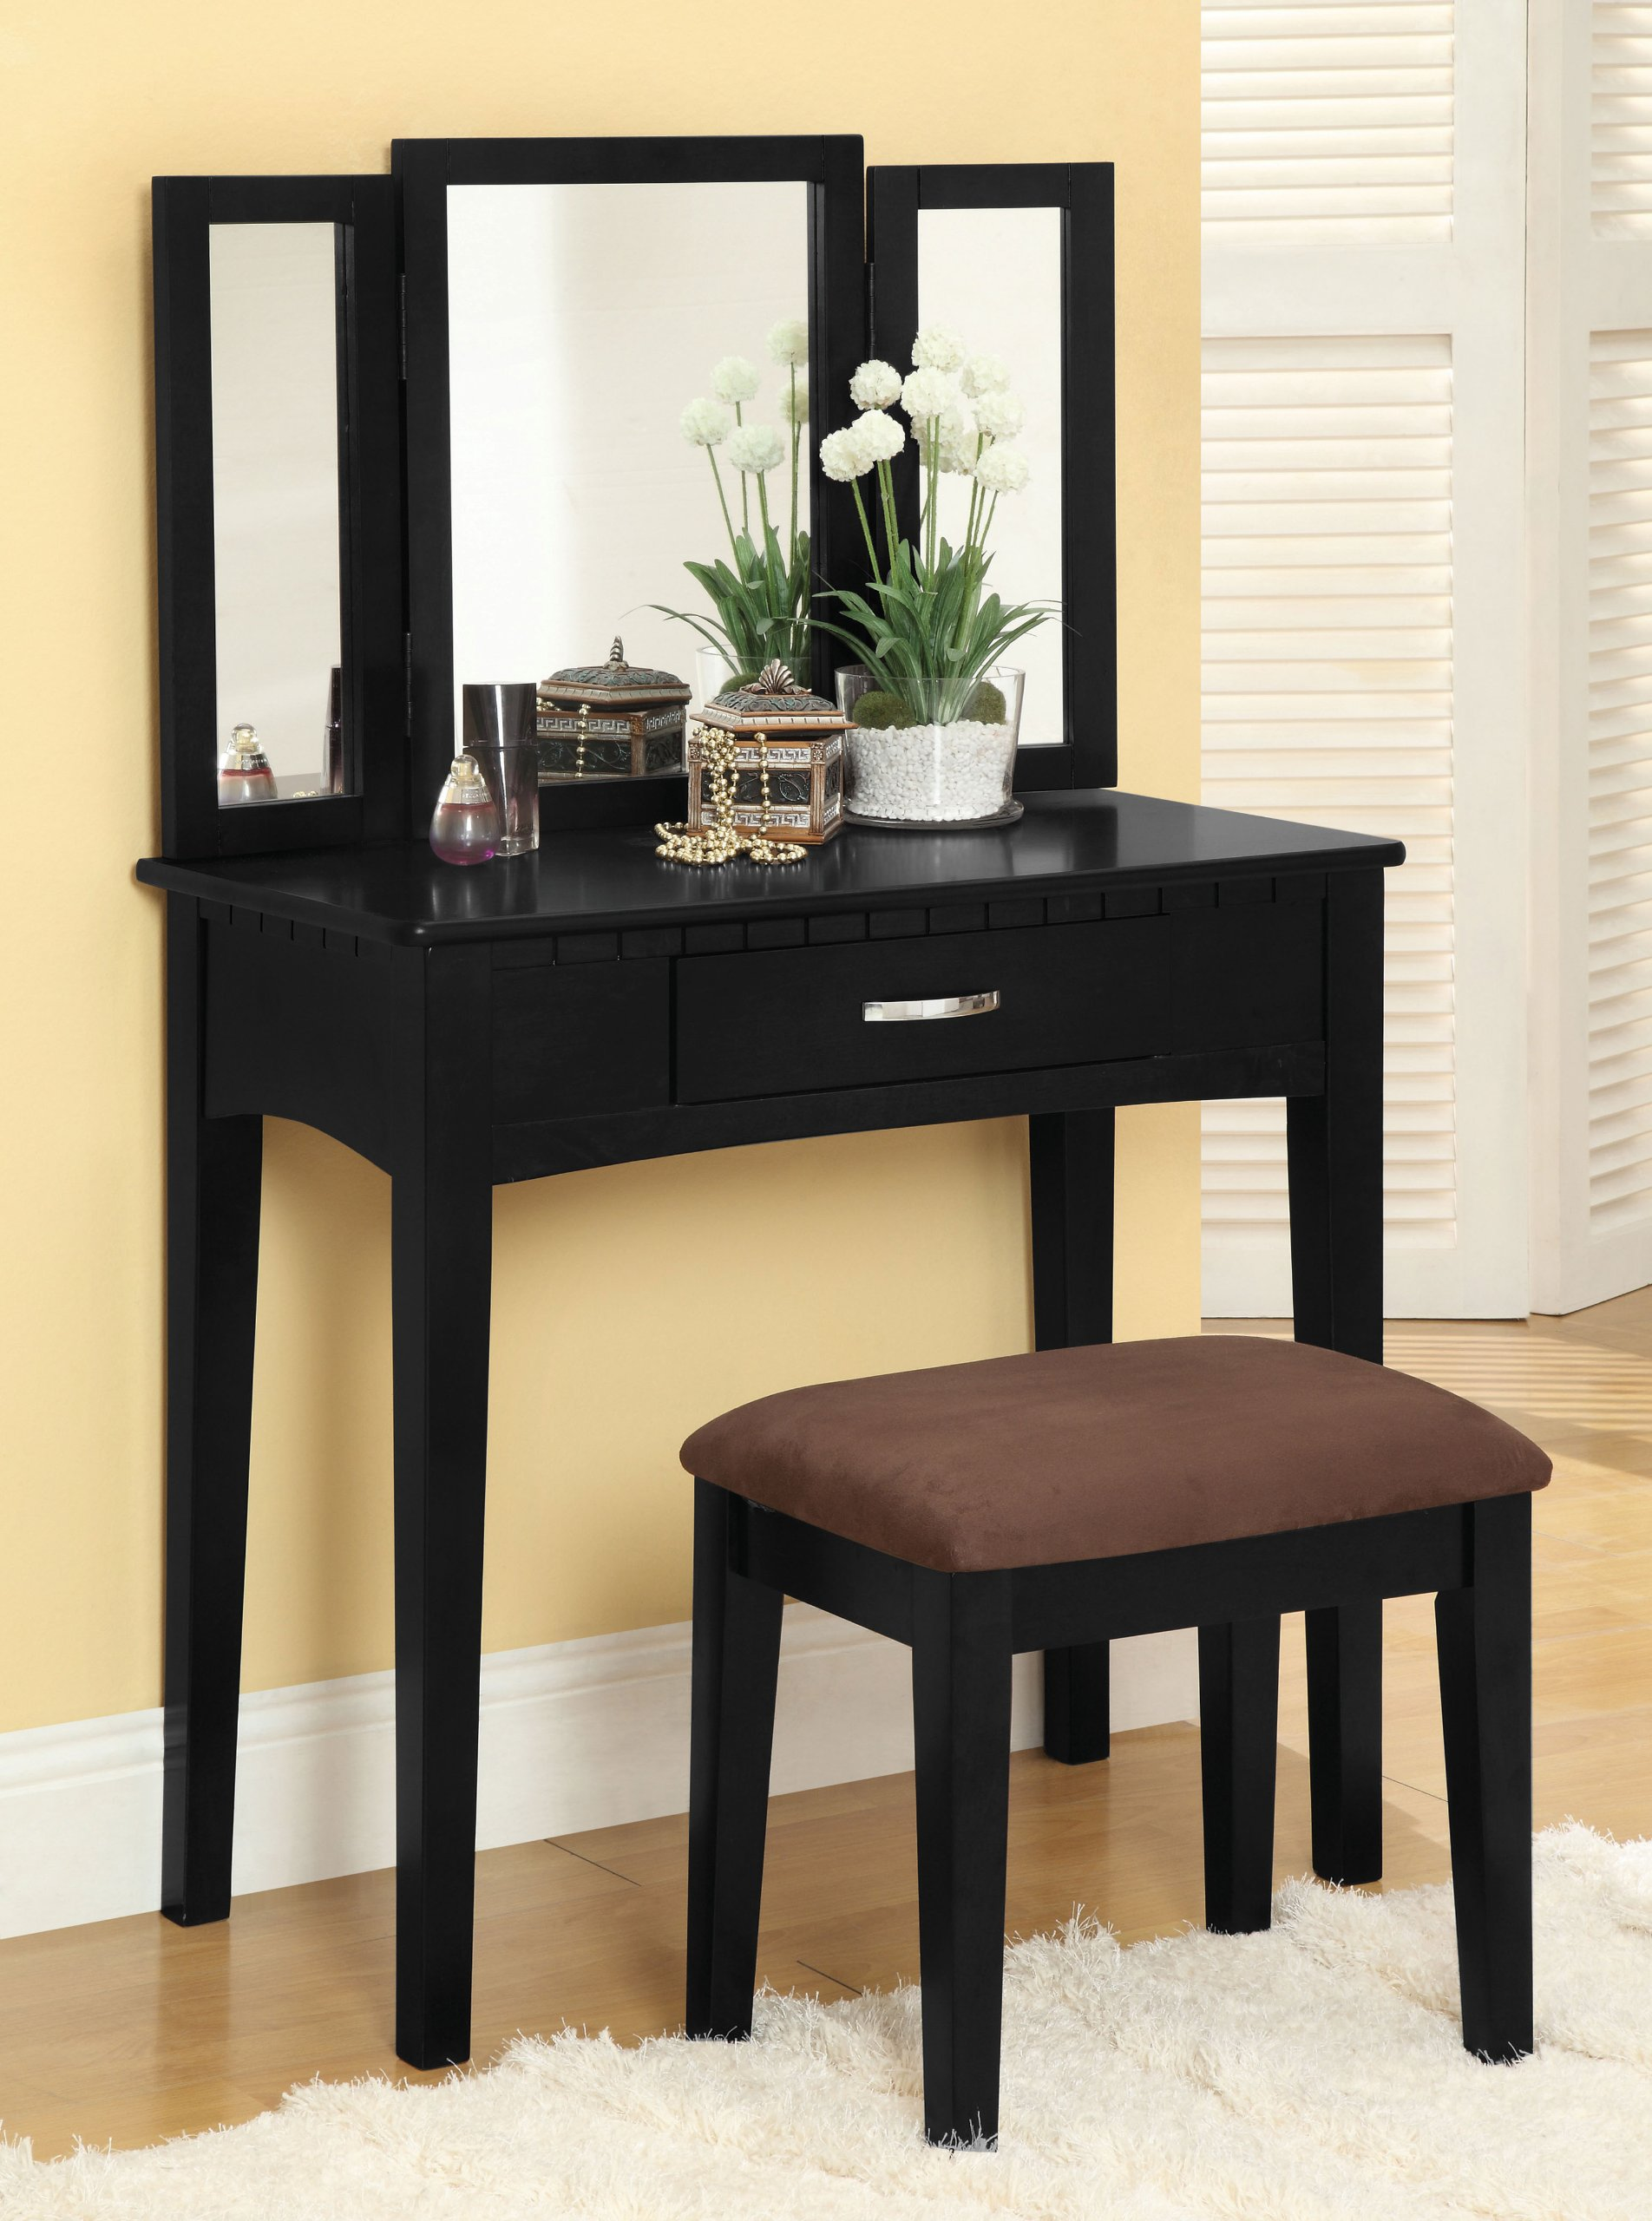 Furniture of America Potterville Vanity Set, Black